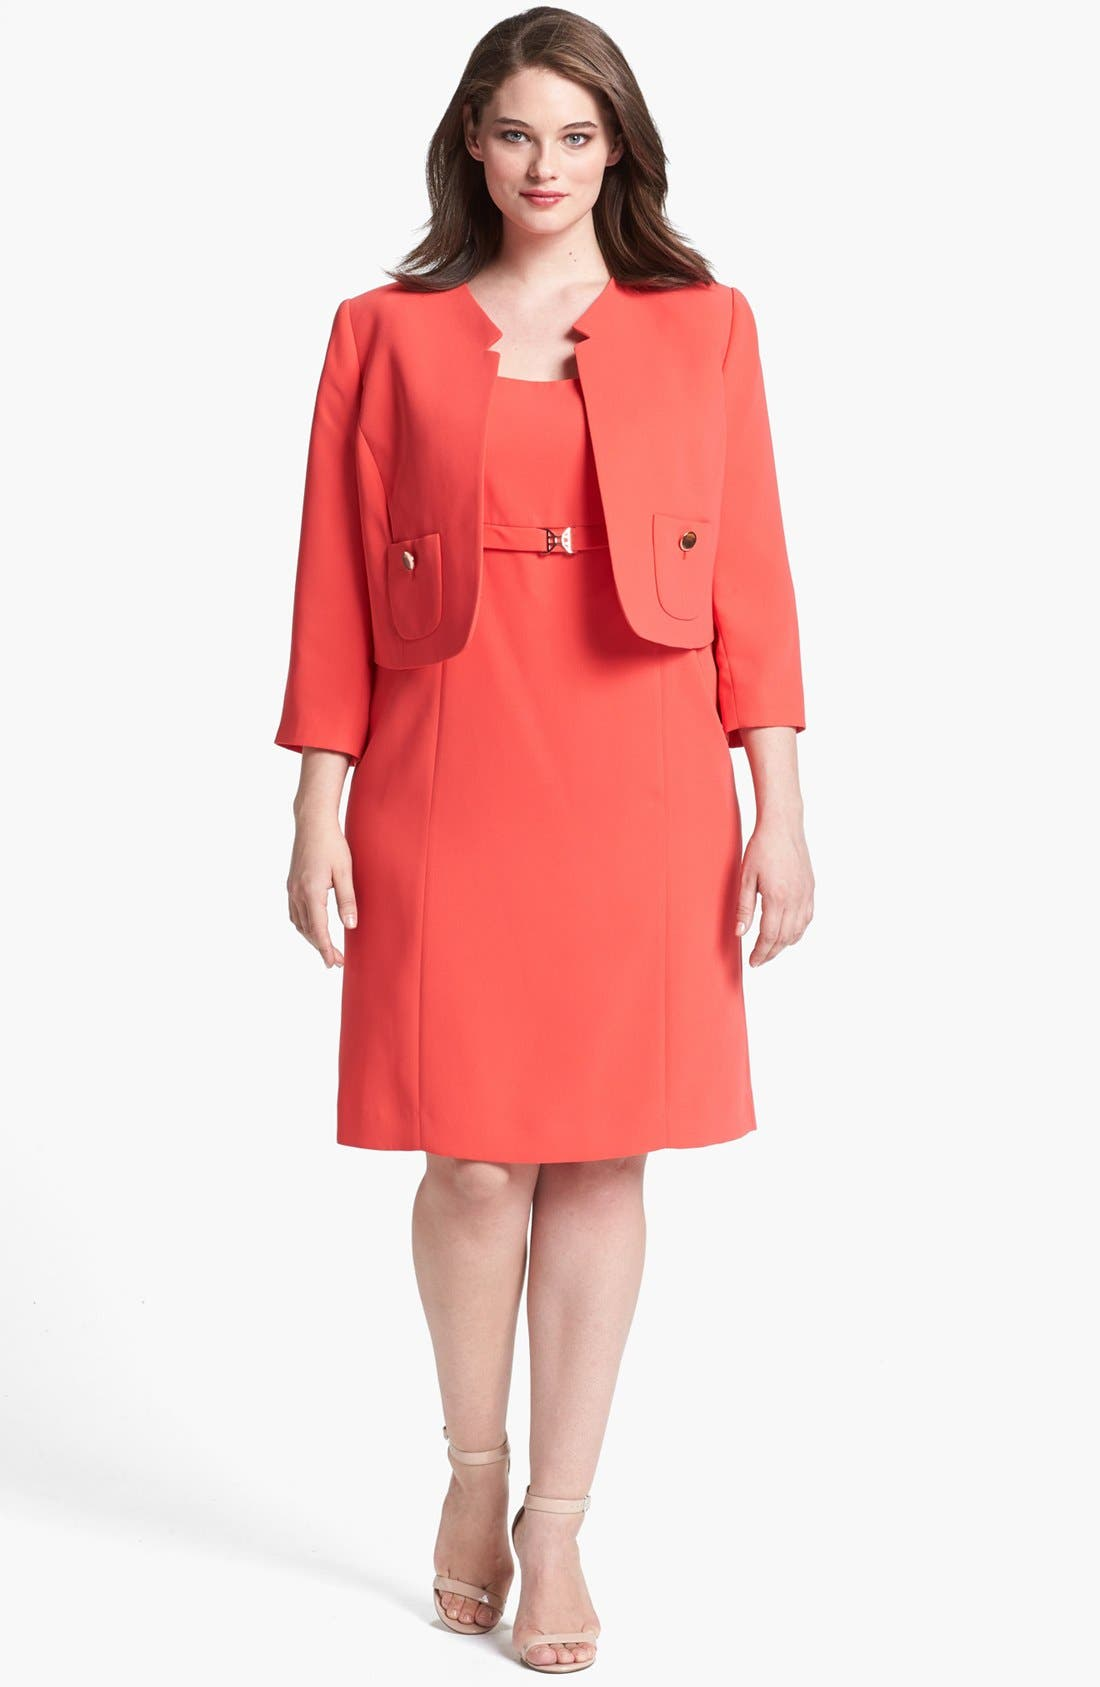 Alternate Image 1 Selected - Tahari Sheath Dress & Jacket (Plus Size)